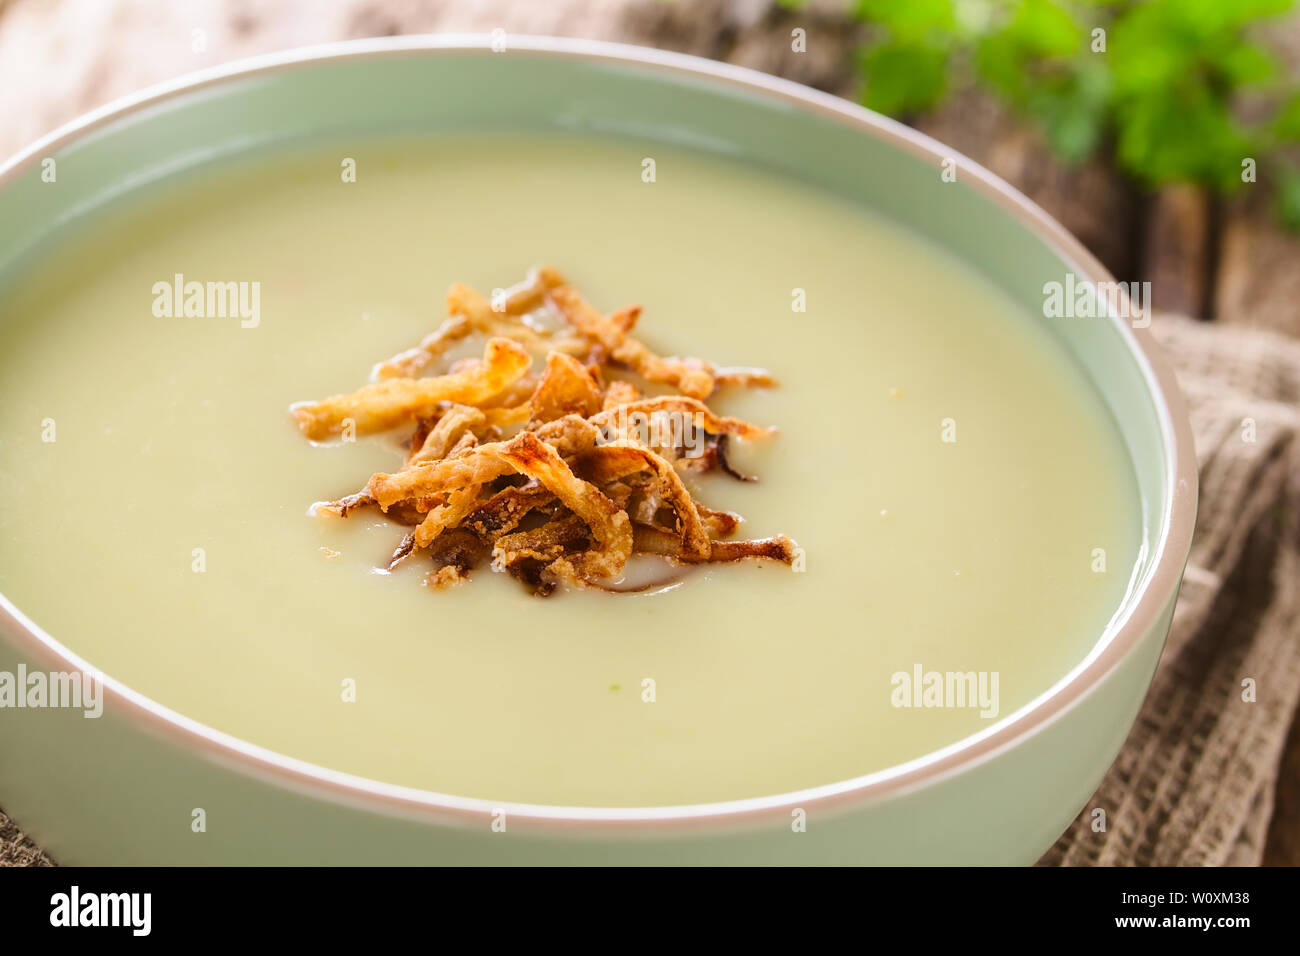 Fresh homemade cream of potato soup in bowl garnished with crispy onion strings (Selective Focus, Focus on the onion strings in the front) - Stock Image